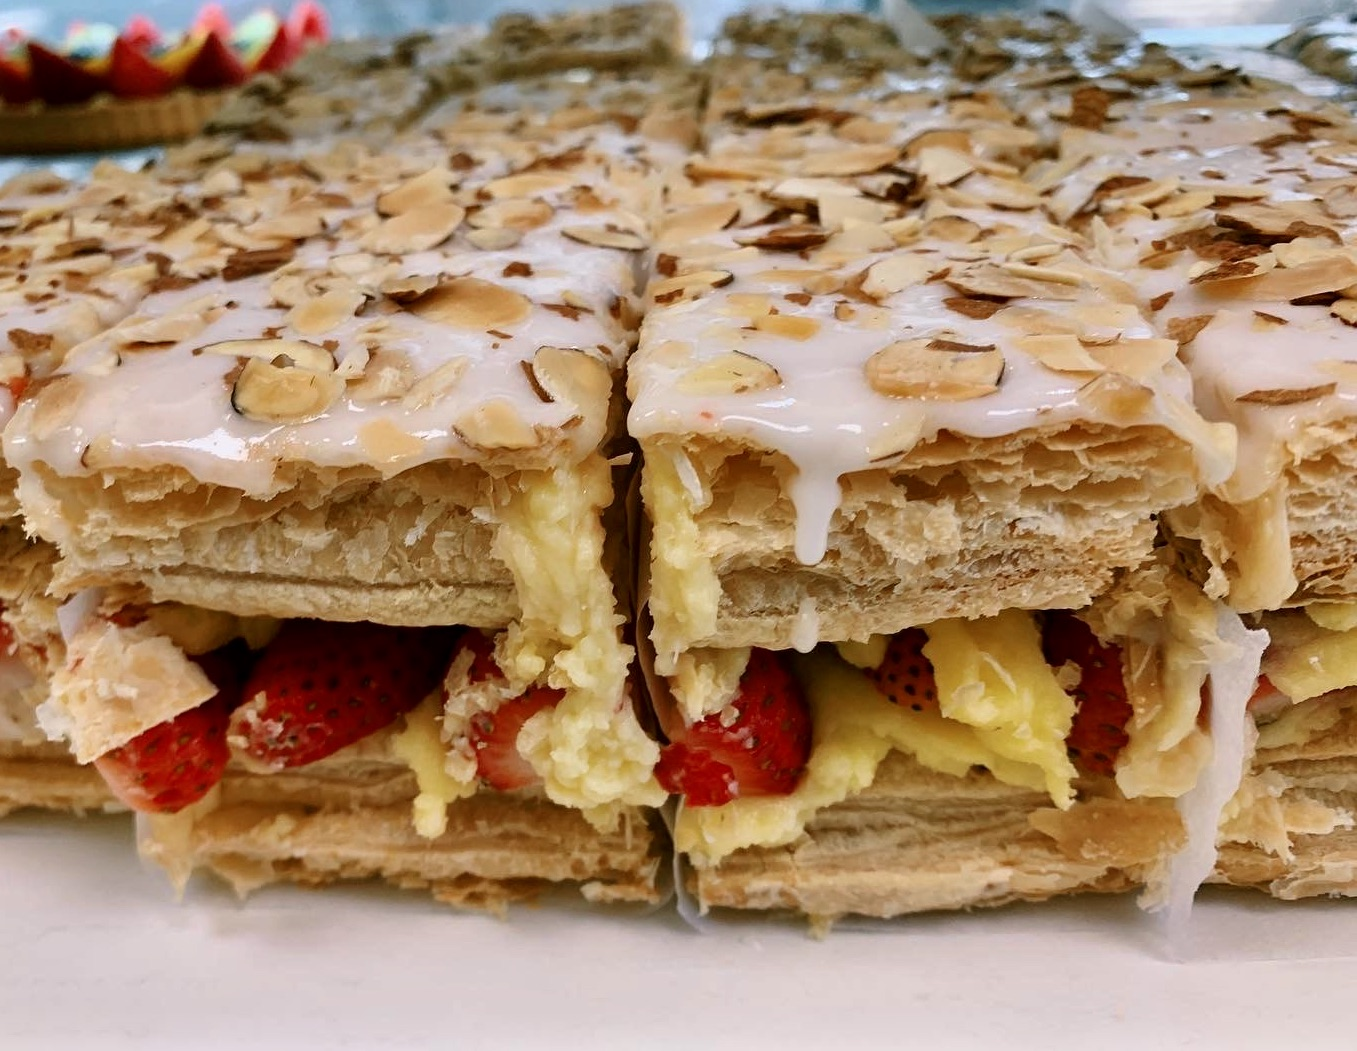 napolean cake slice with almonds and strawberries